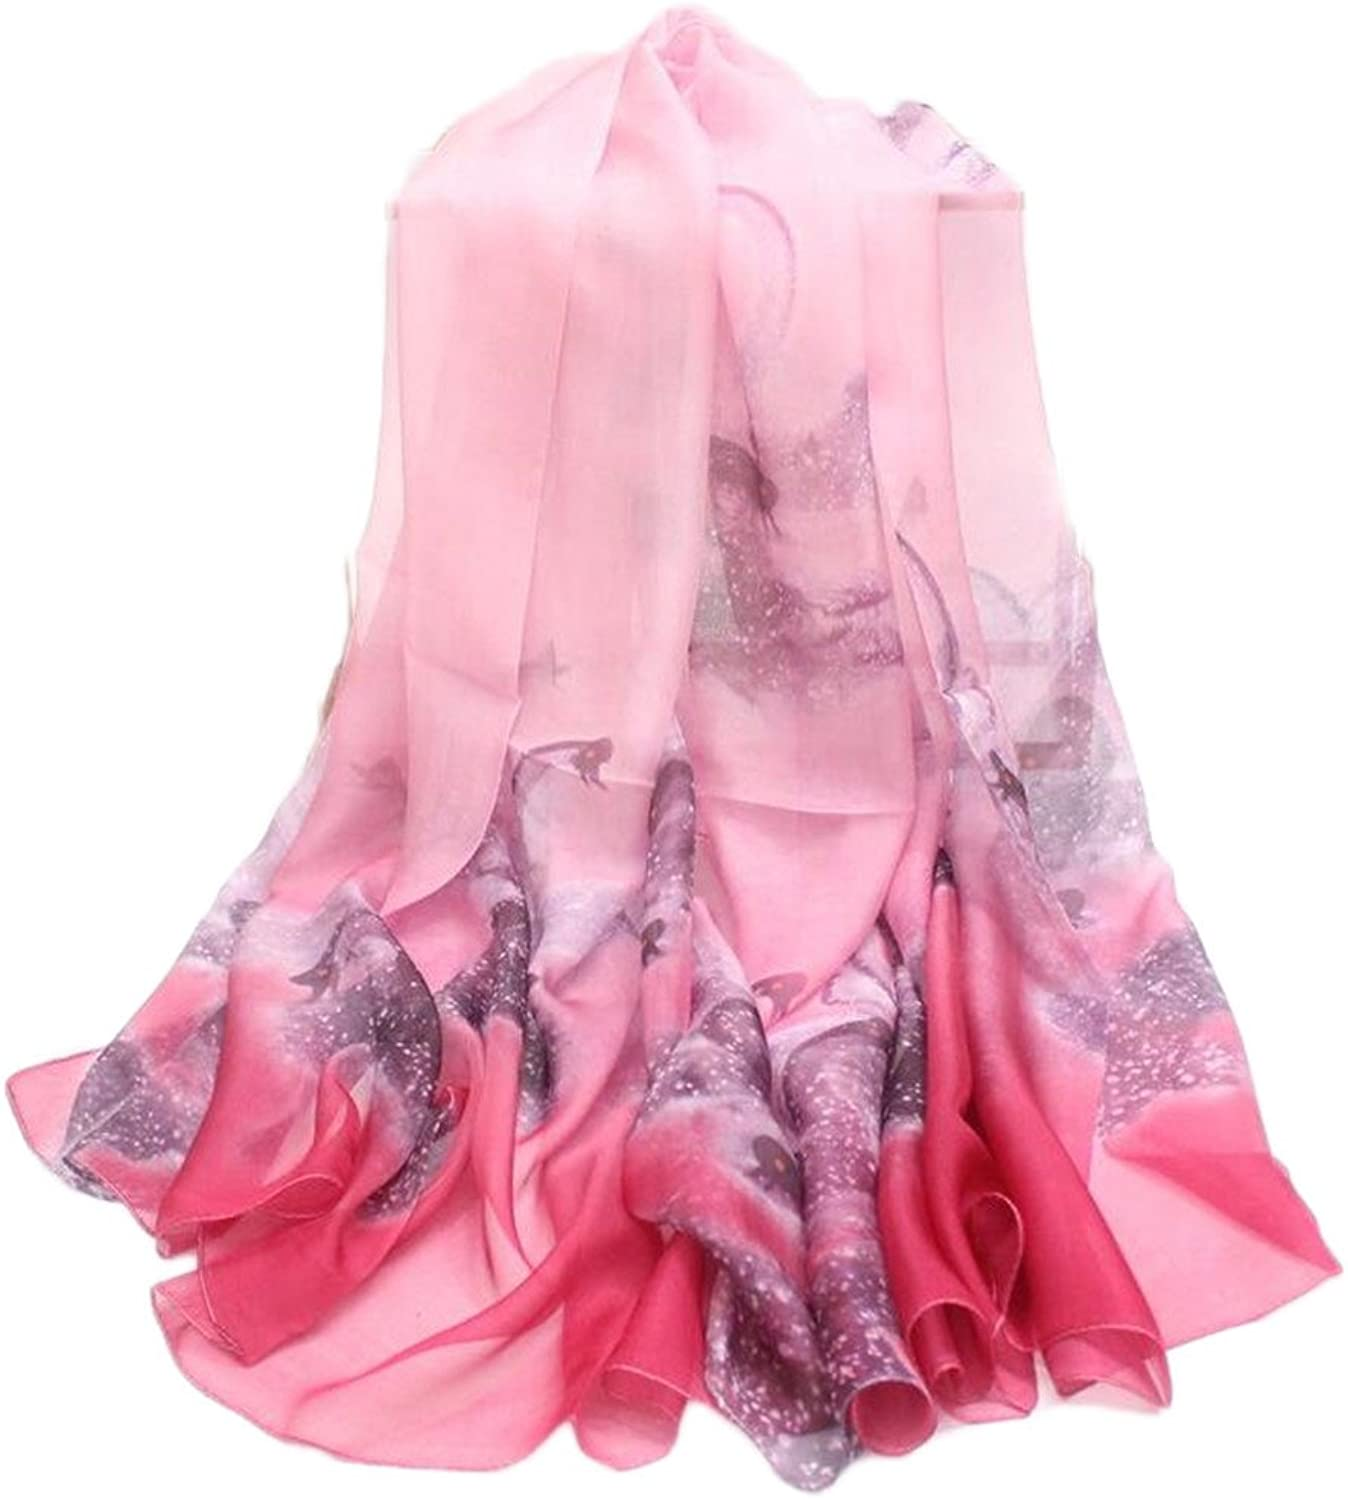 Women's Scarf Transparent Medium Thickness Printed Silk Scarf for Travel Party Dating, Size 43  70 Inch,